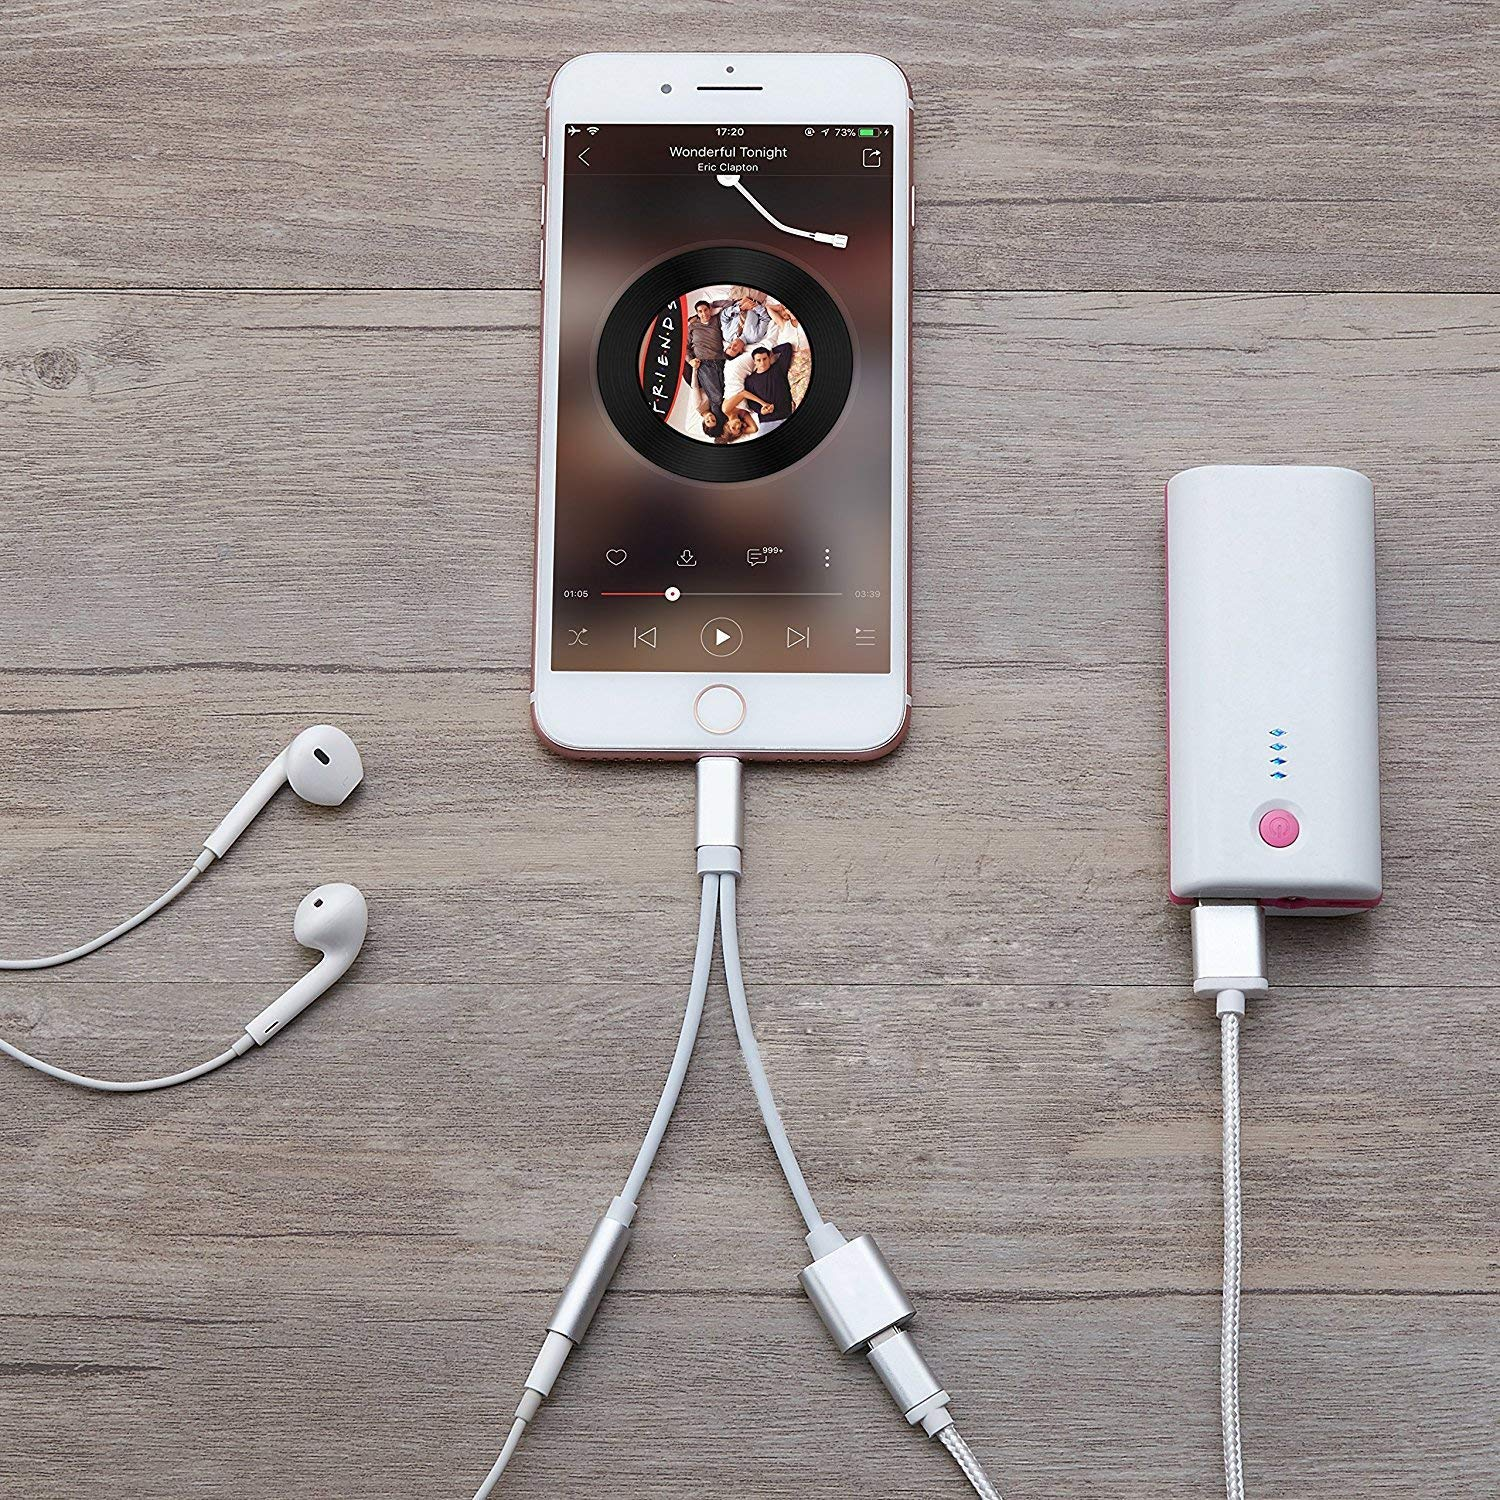 Raytine Headphone Adapter for iPhone 3.5mm Jack Dongle 2 in 1 Accessories Charger Cables Earphone Connector Convertor Chargers /& Audio Compatible with iPhone Xs MAX//XR//XS//X 8// 8Plus// 7//7 Plus 4350464697